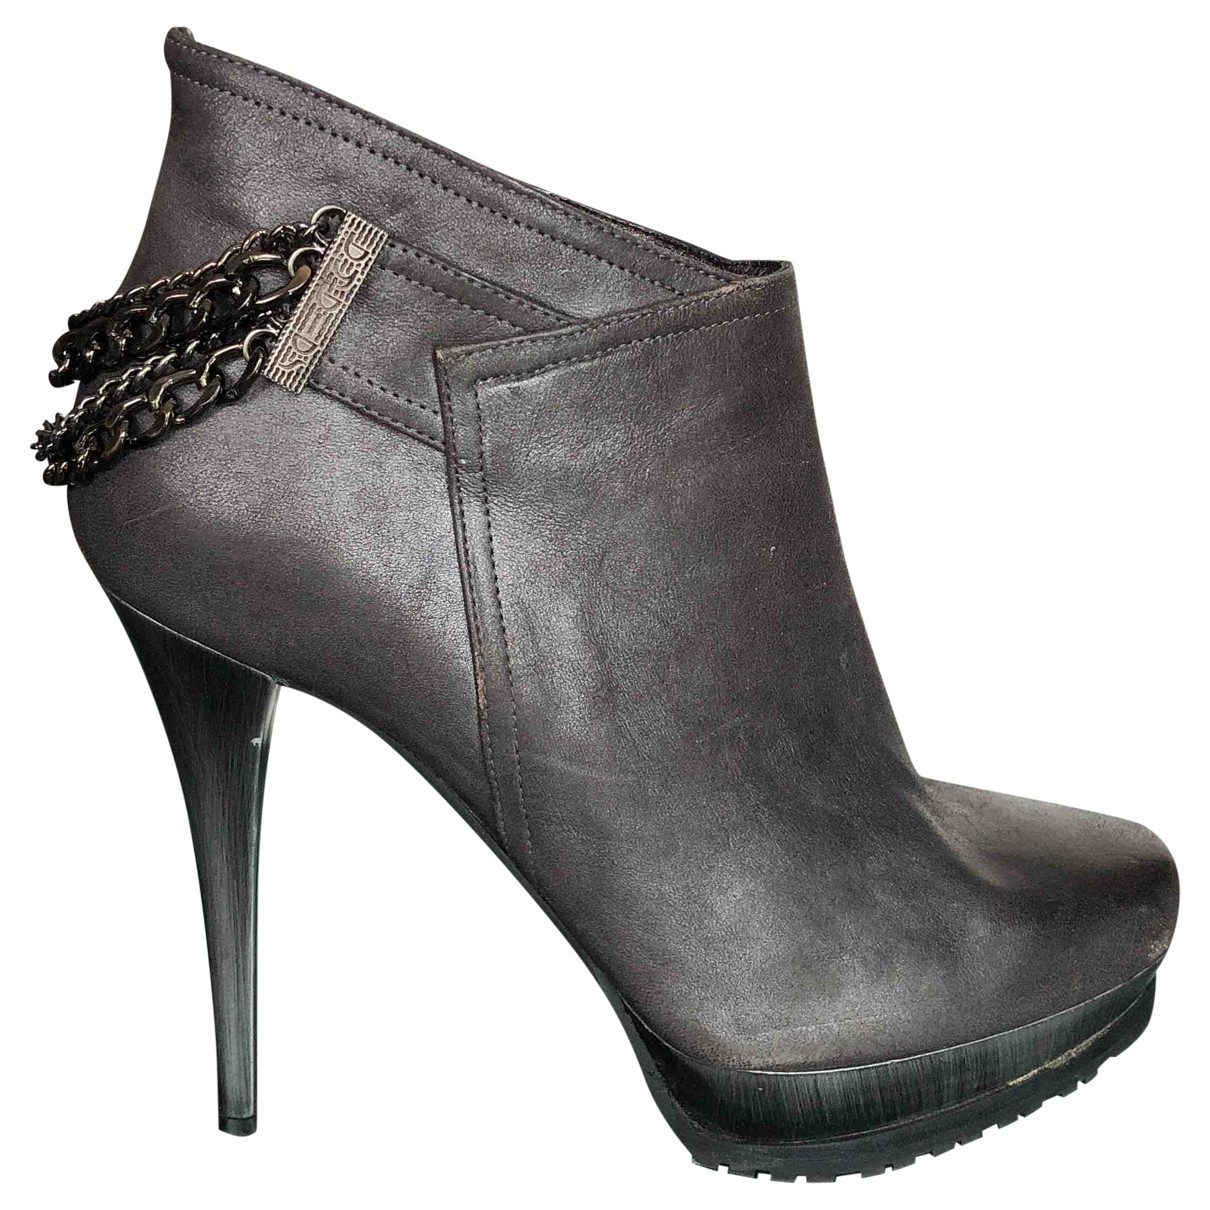 Byblos \N Metallic Leather Ankle boots for Women 39 EU